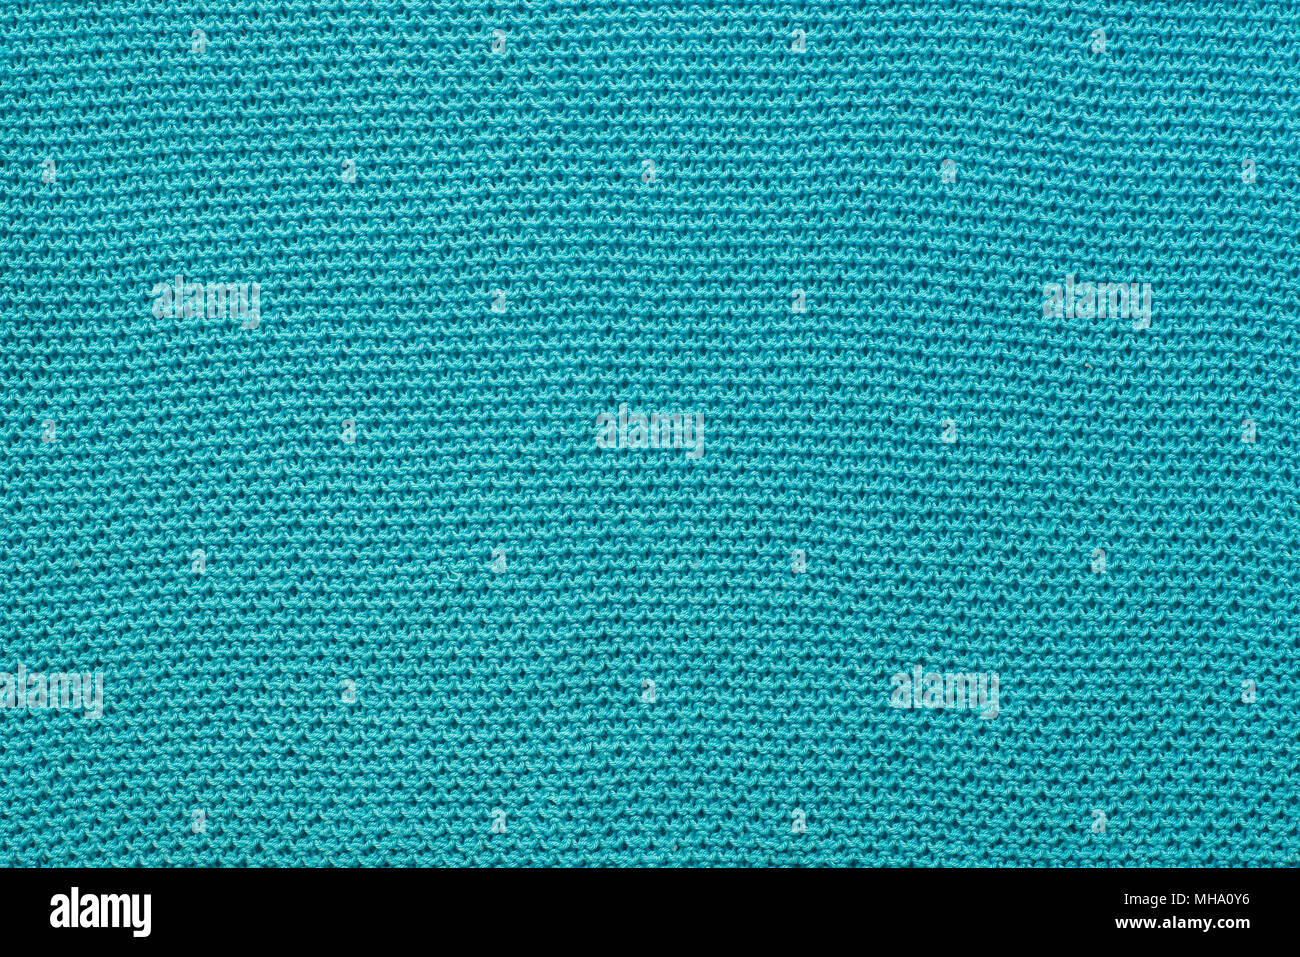 Turquoise Color Knitwear Cotton Fabric Background Texture Stock